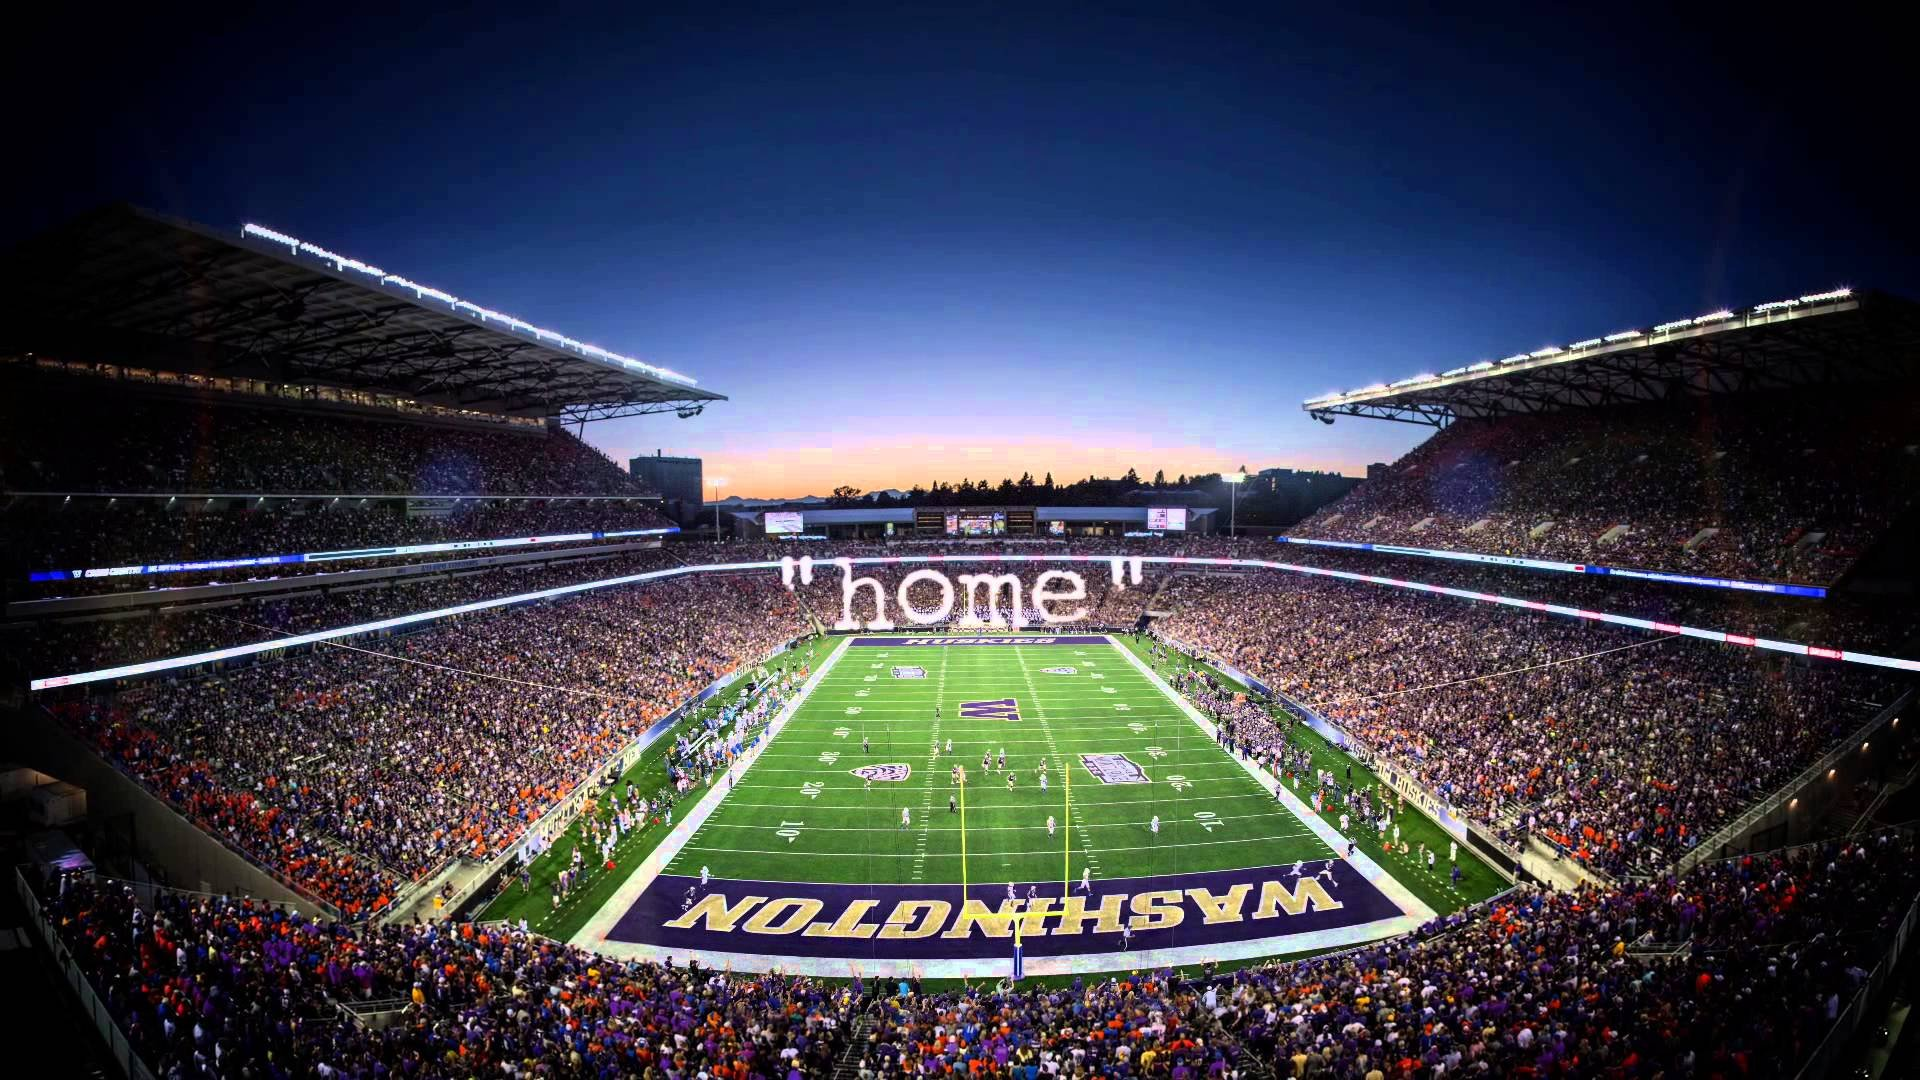 Washington Huskies Wallpaper - WallpaperSafari